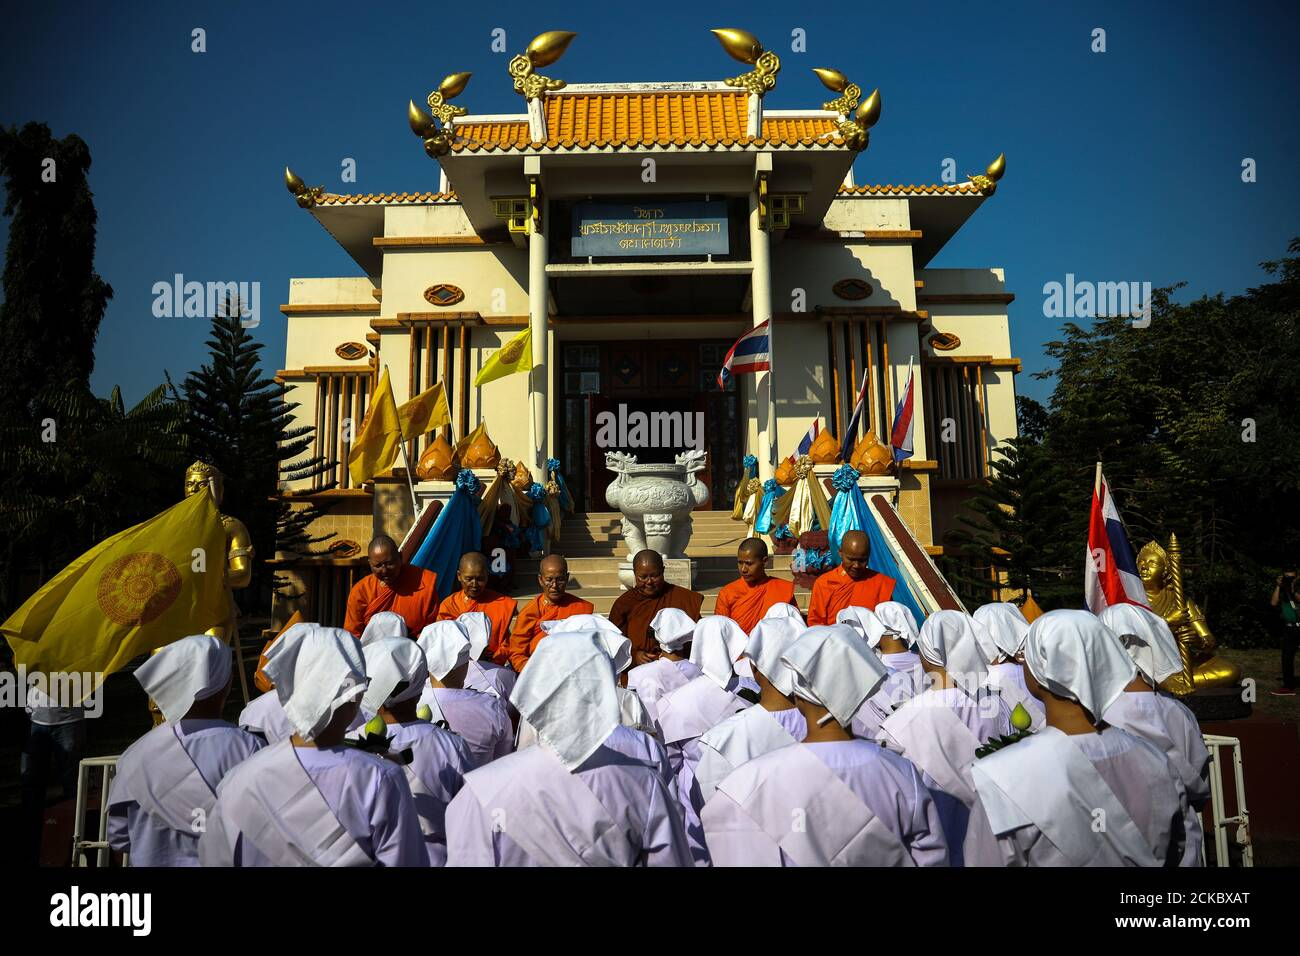 Thai Women Devotees In White Robes Pray During A Mass Female Buddhist Novice Monk Ordination Ceremony At The Songdhammakalyani Monastery Nakhon Pathom Province Thailand December 5 2018 Officially Only Men Can Become